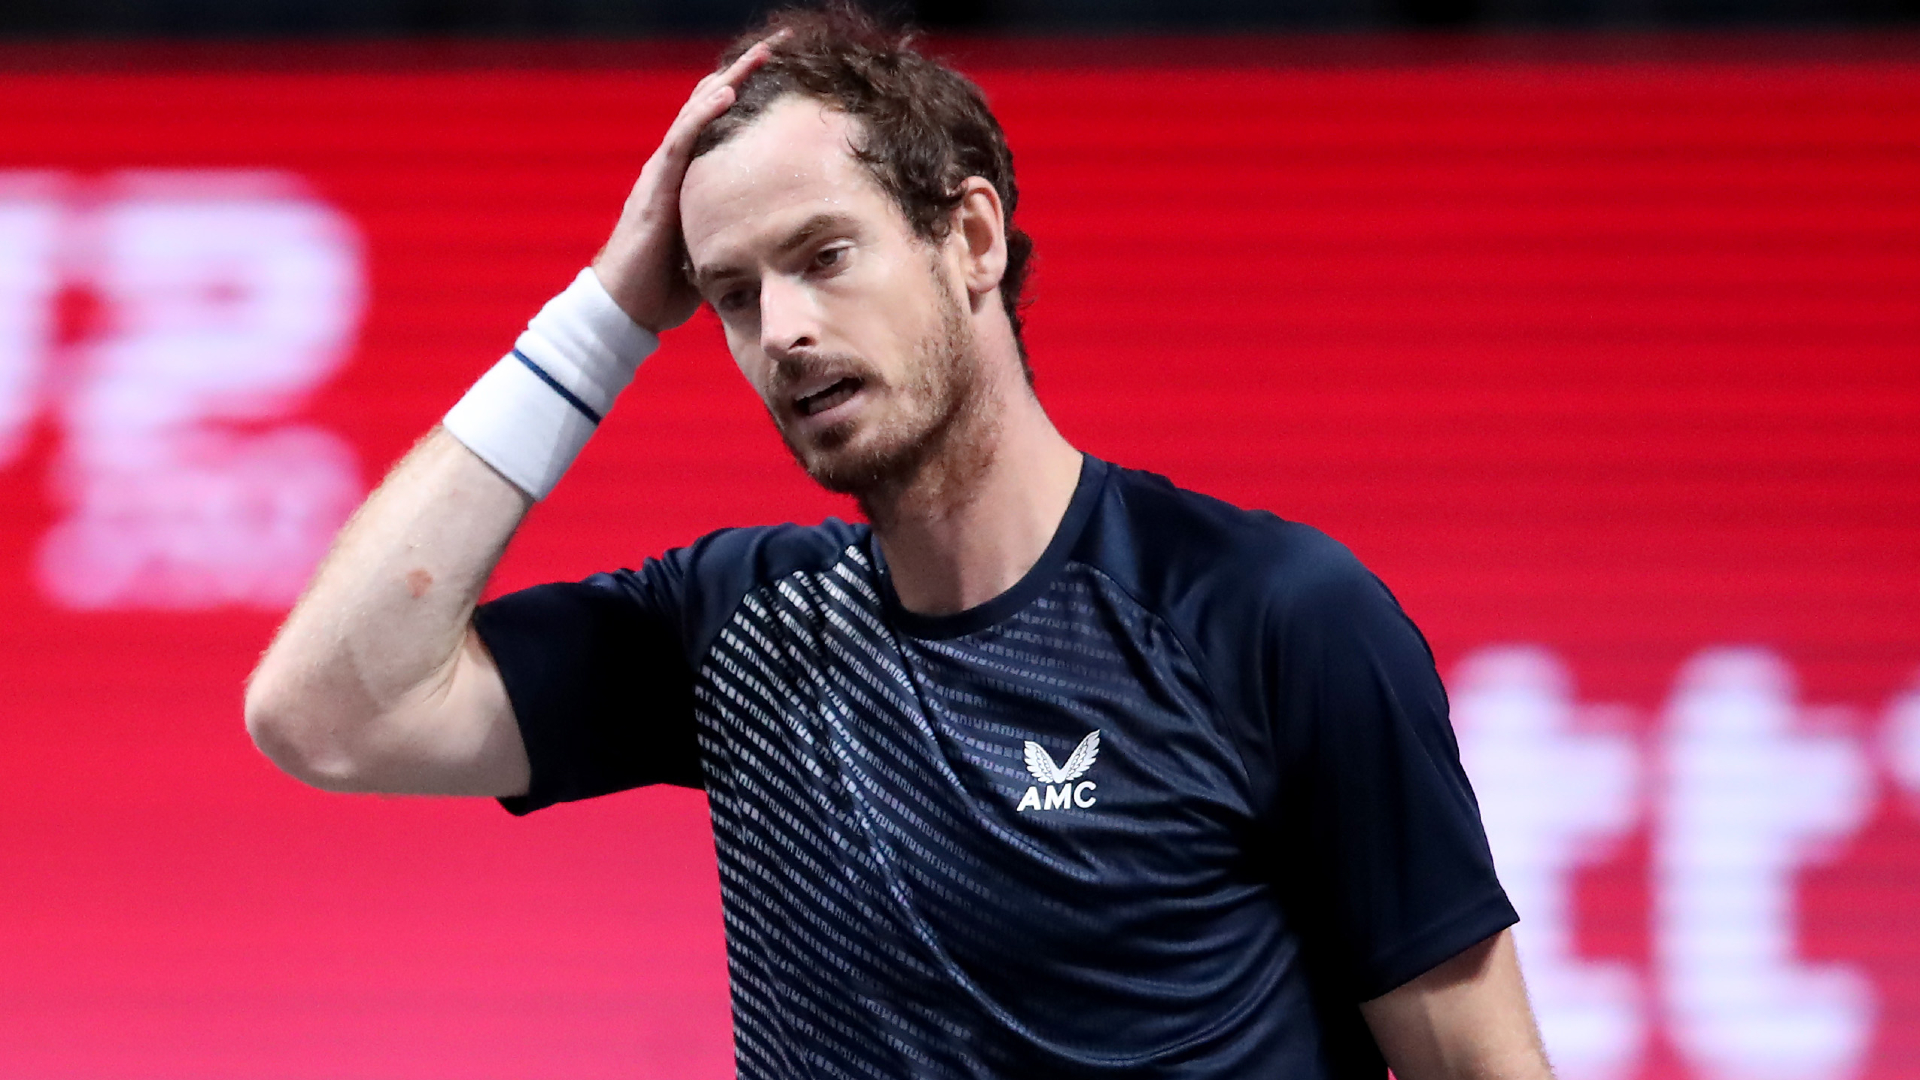 Denied his Australian Open wildcard by a positive COVID-19 result, Andy Murray finally got his season started in disappointing fashion.